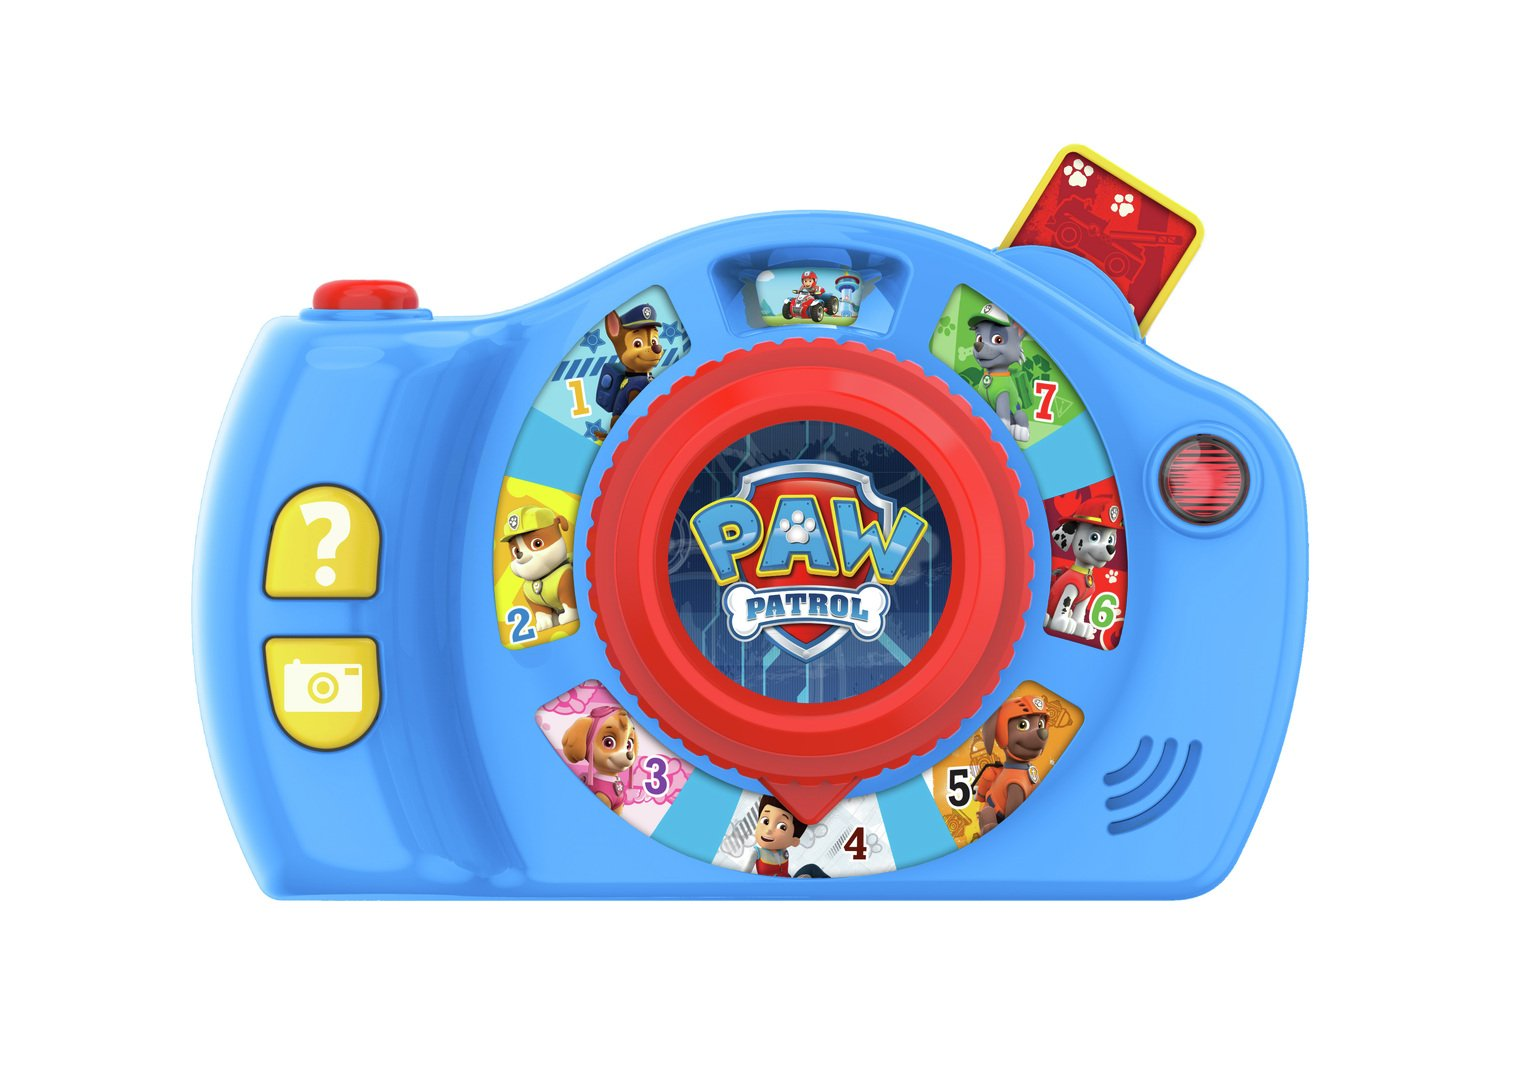 PAW Patrol My First Camera